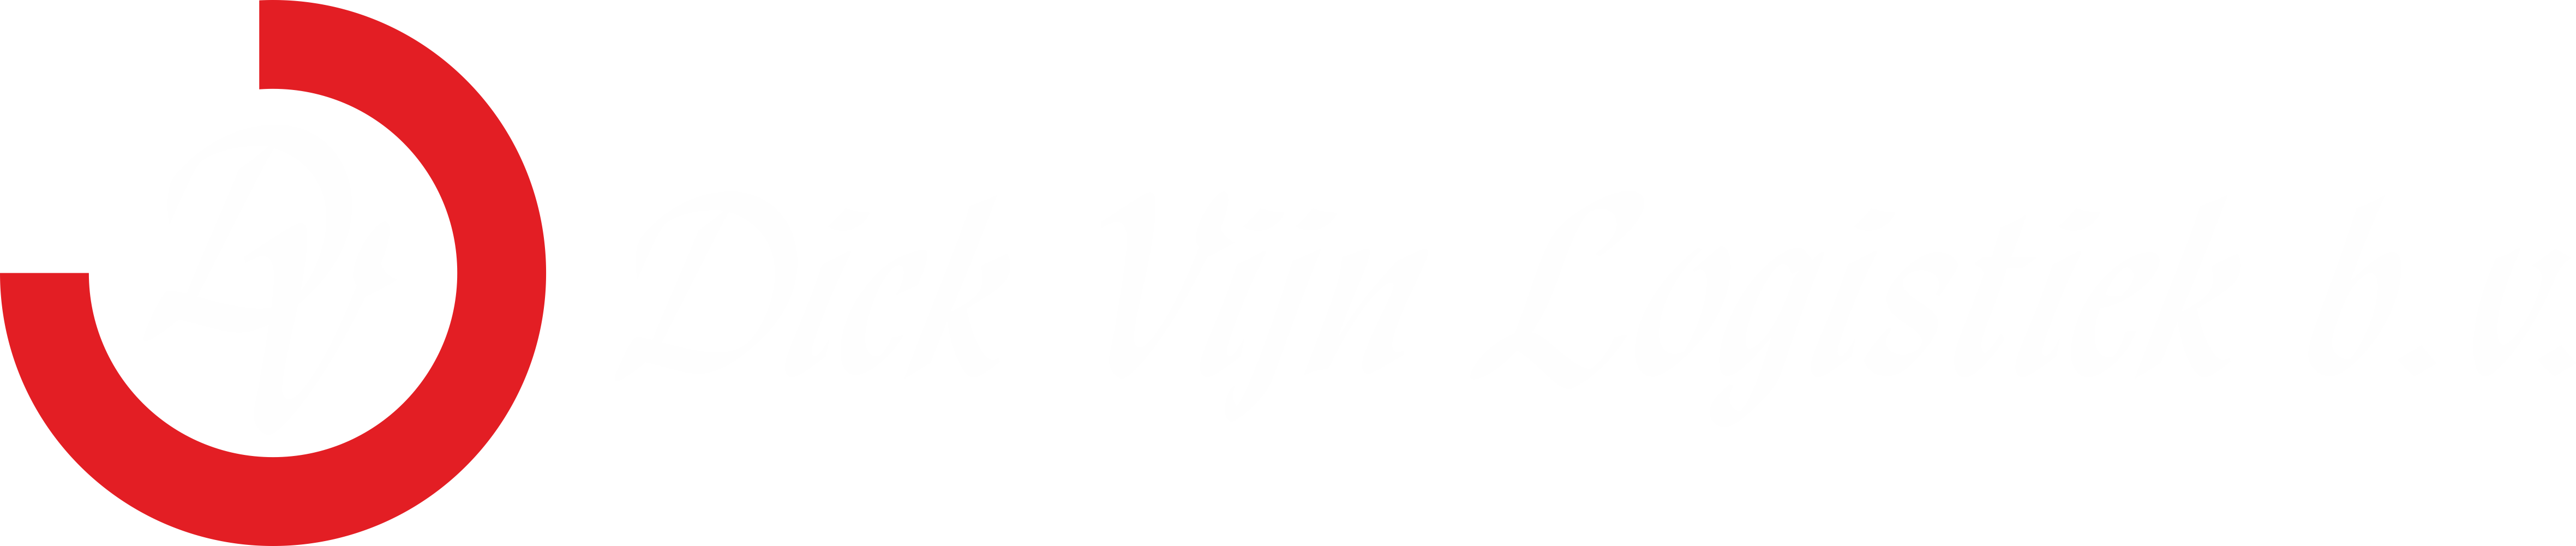 Dick Vijn Logistiek B.V.